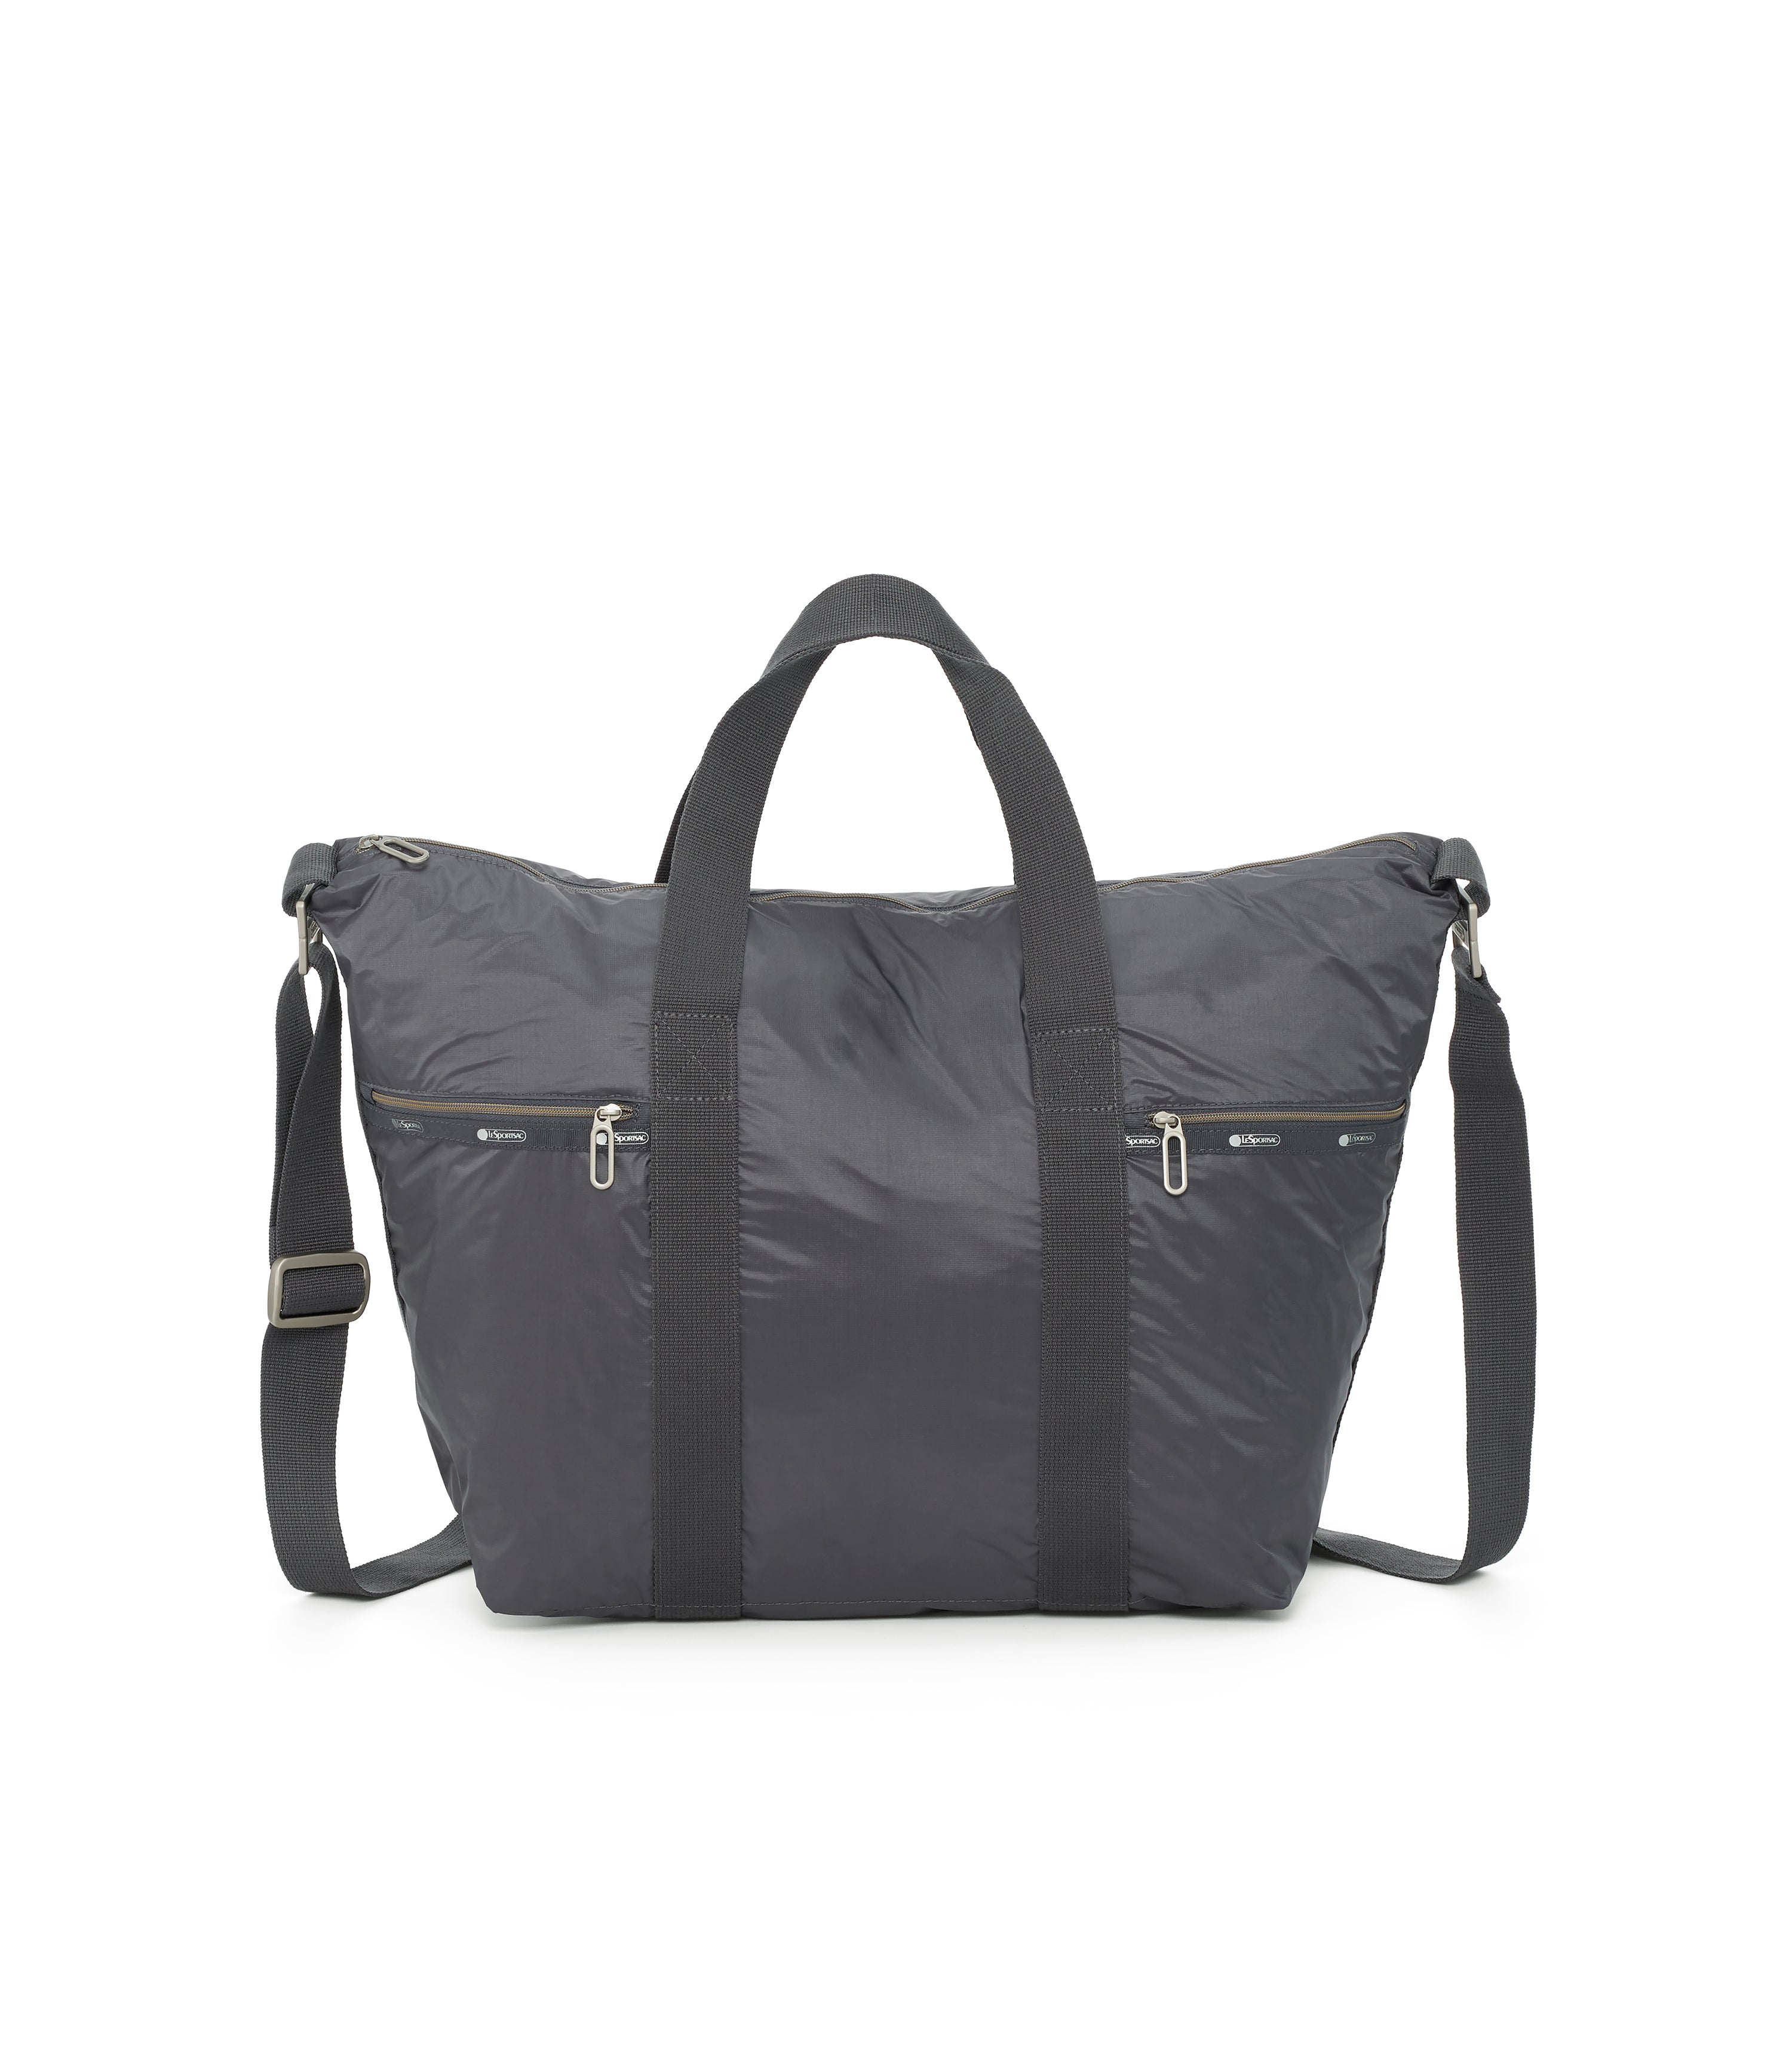 Large Easy Tote